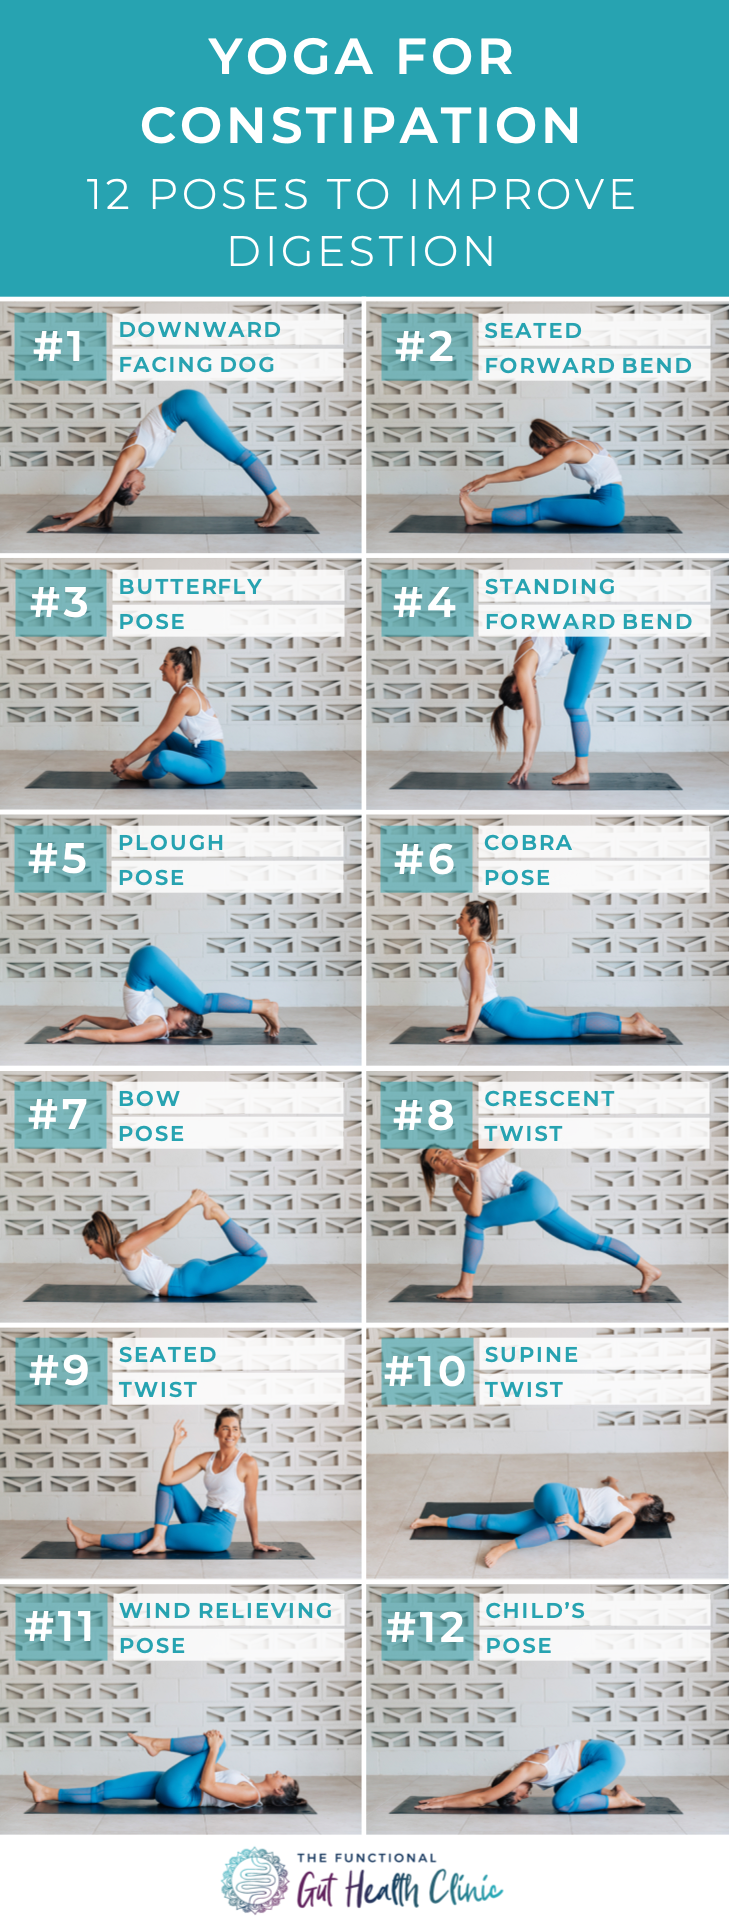 Standing Yoga Poses For Digestion